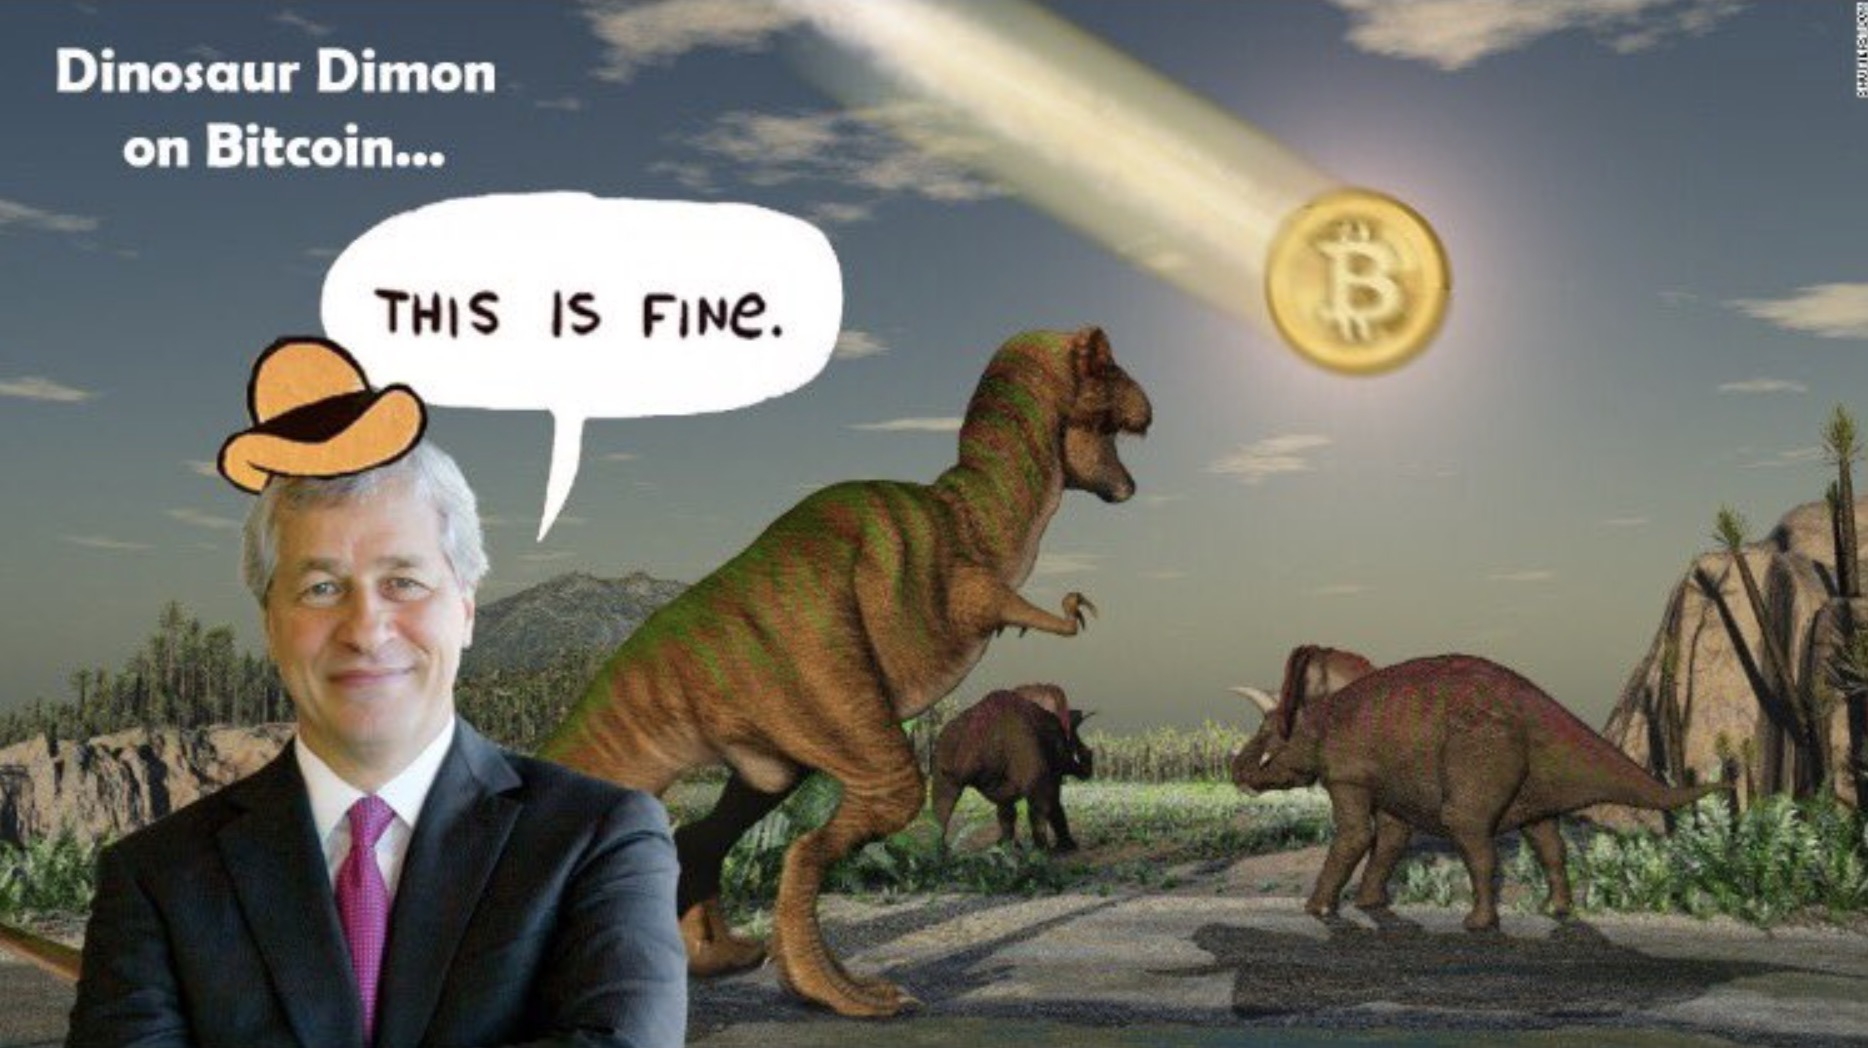 Which is Fraudulent – Bitcoin or JP Morgan?